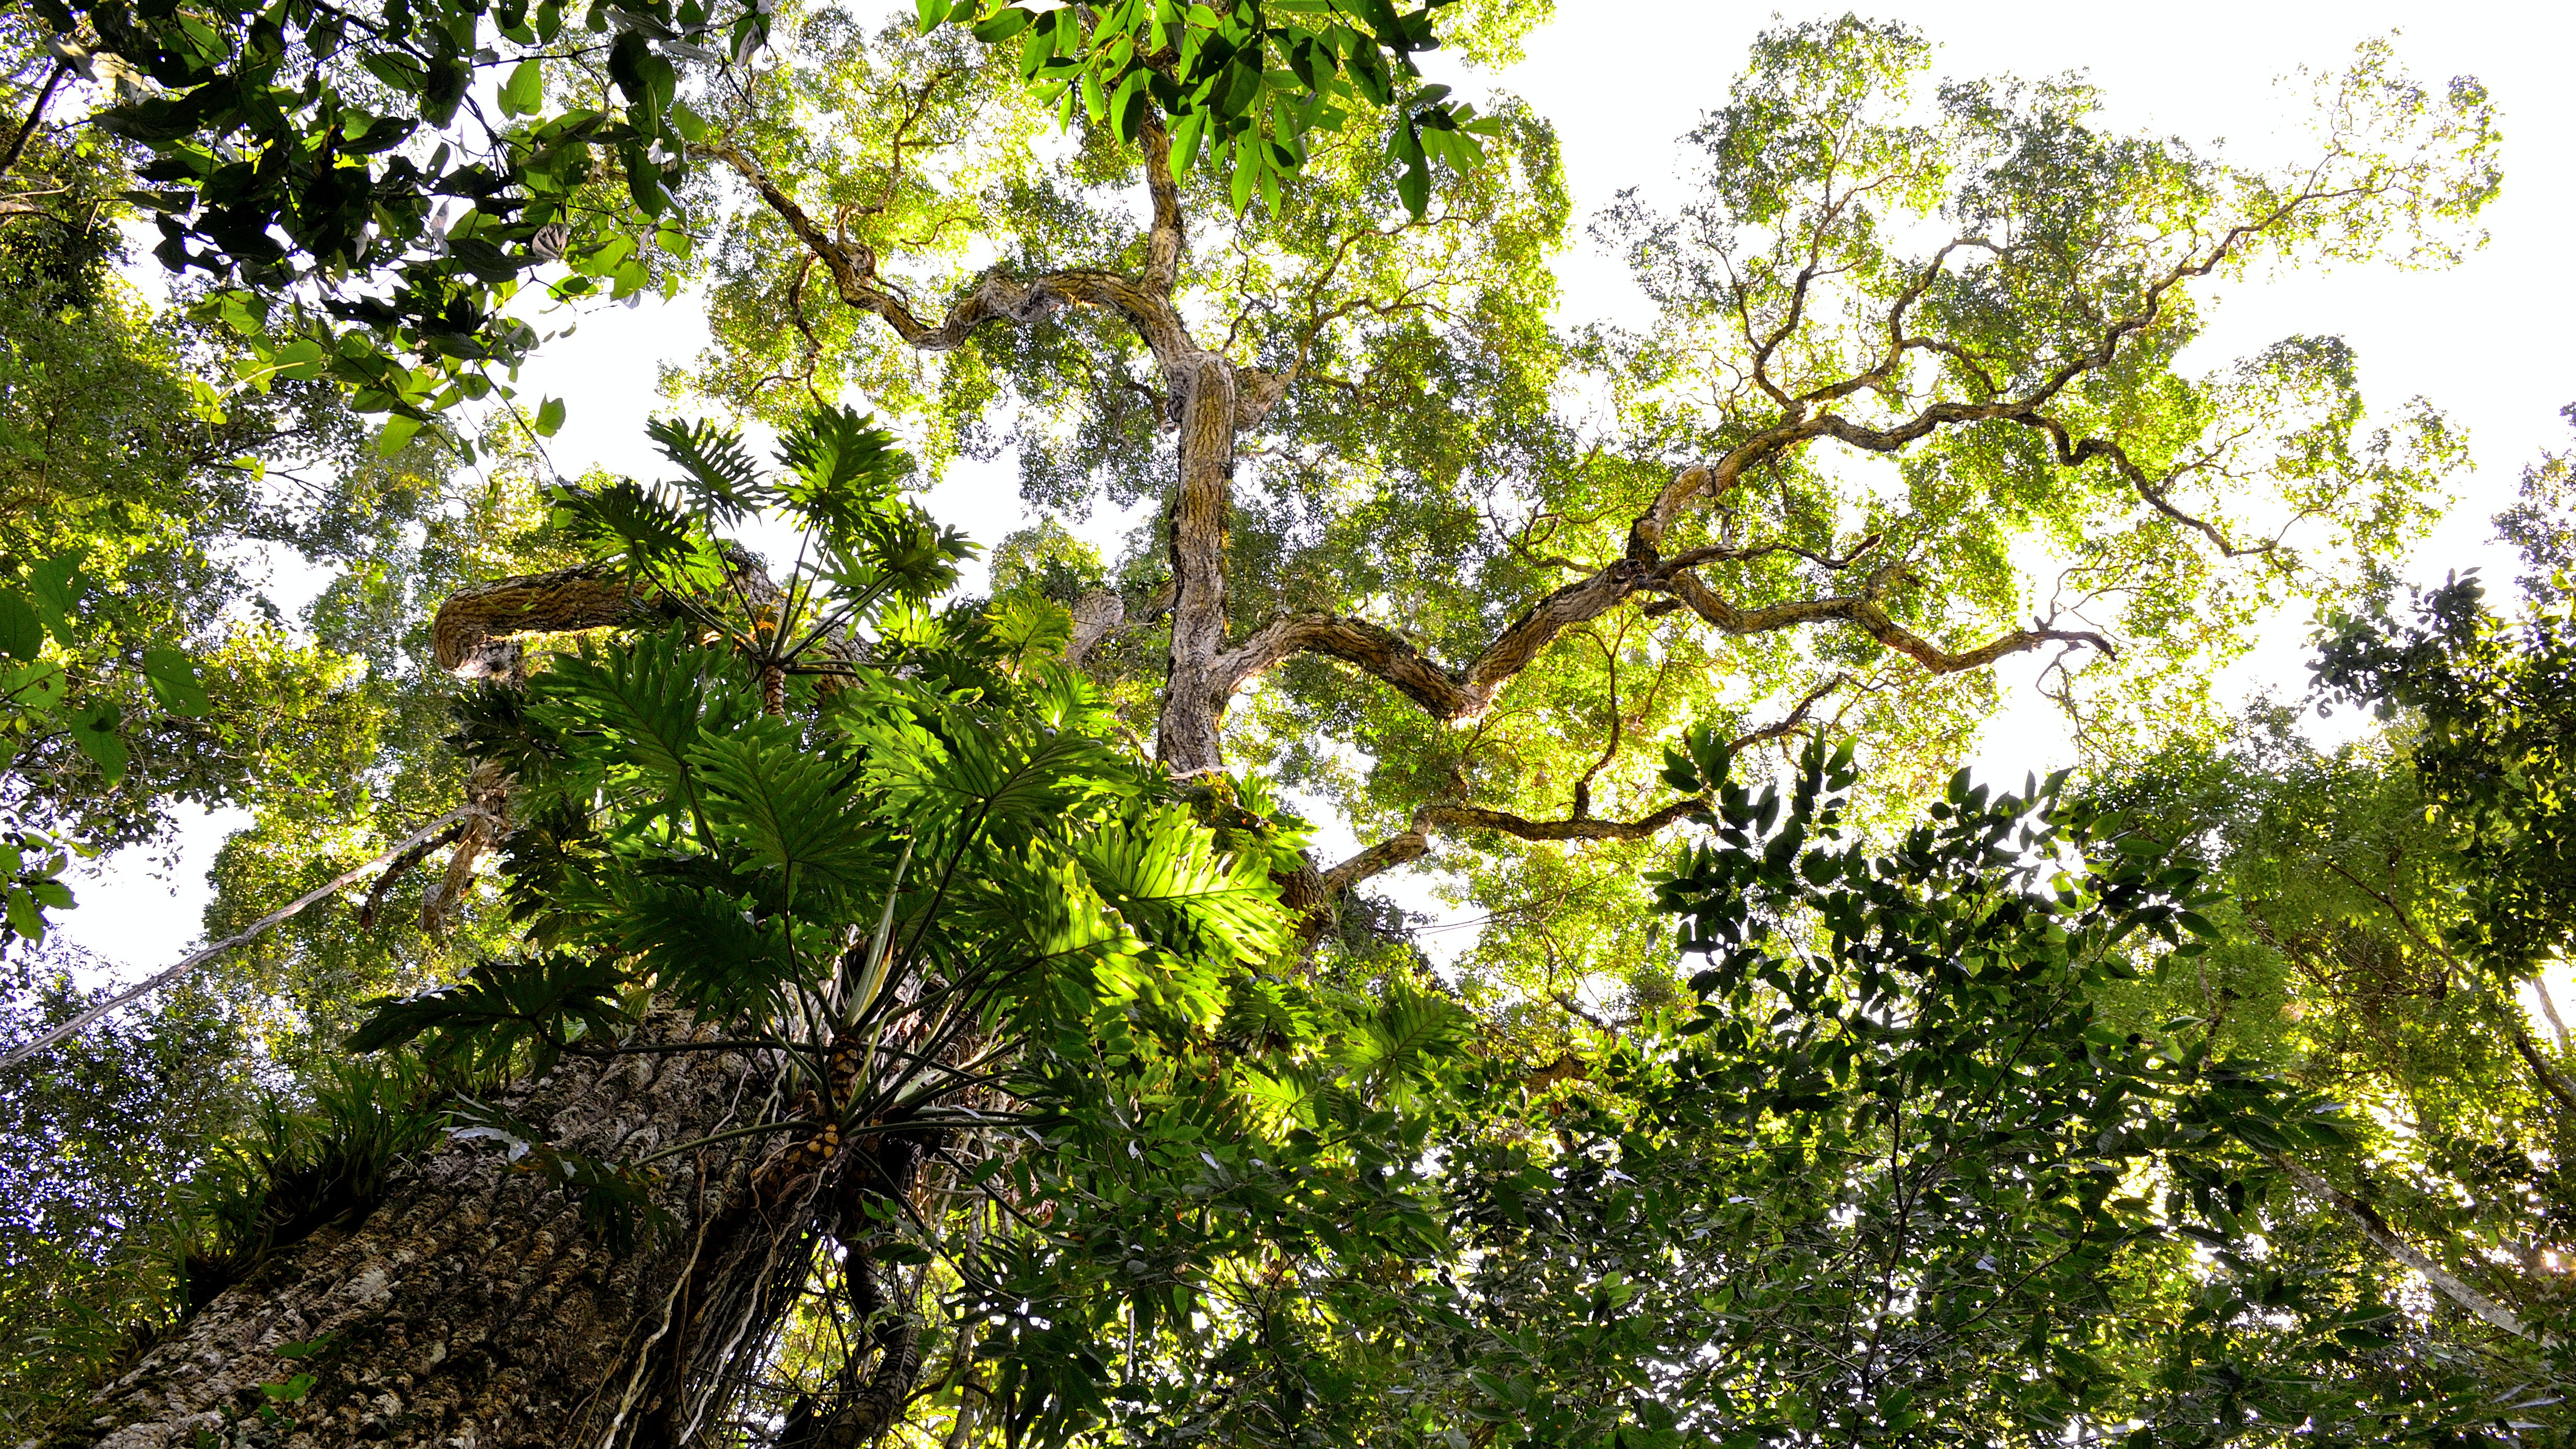 Low Angle Photography of Tall Tree during Daytime